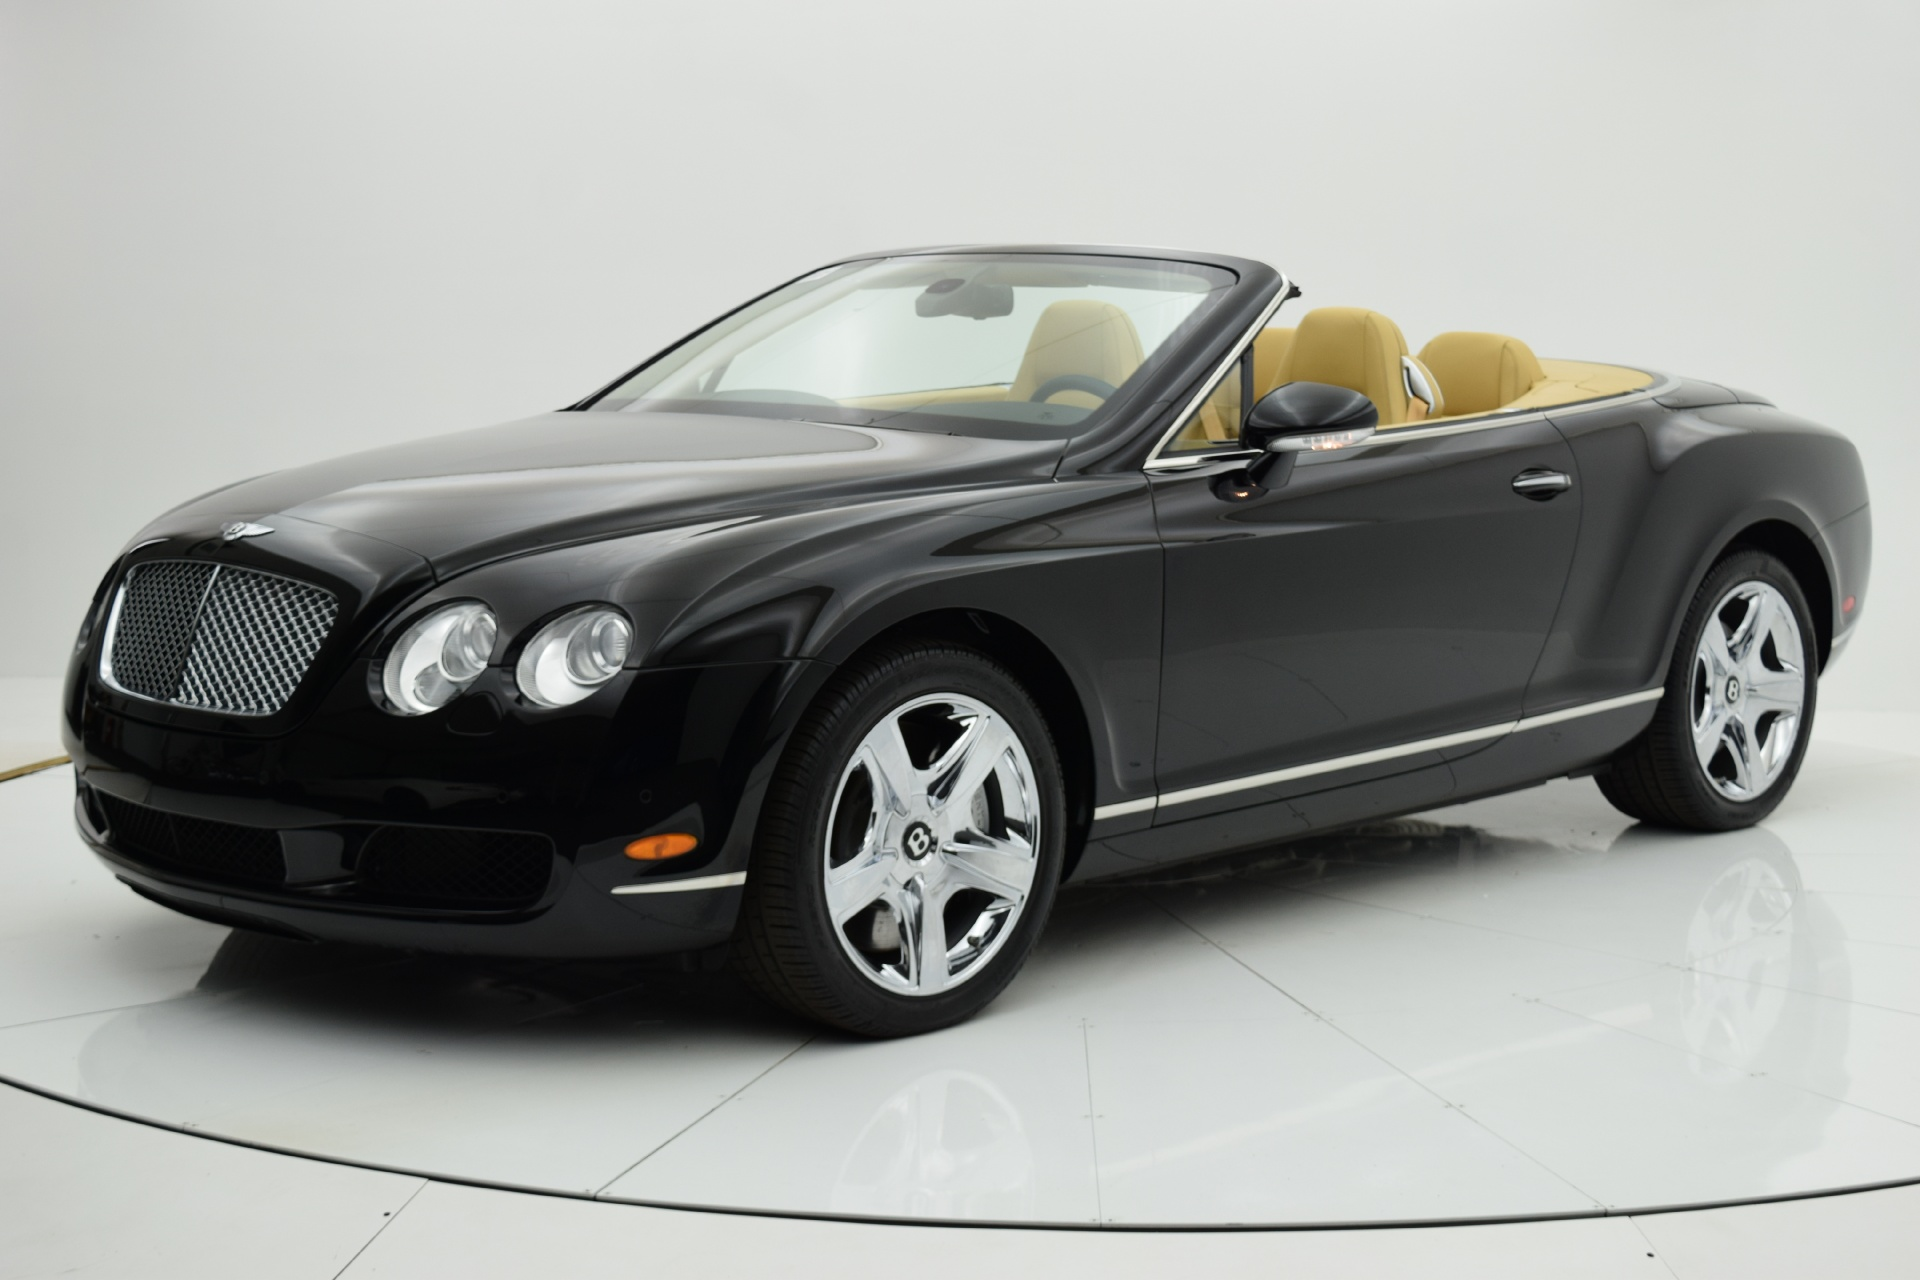 used 2007 bentley continental gt convertible for sale 89 880 fc kerbeck bentley palmyra n j. Black Bedroom Furniture Sets. Home Design Ideas